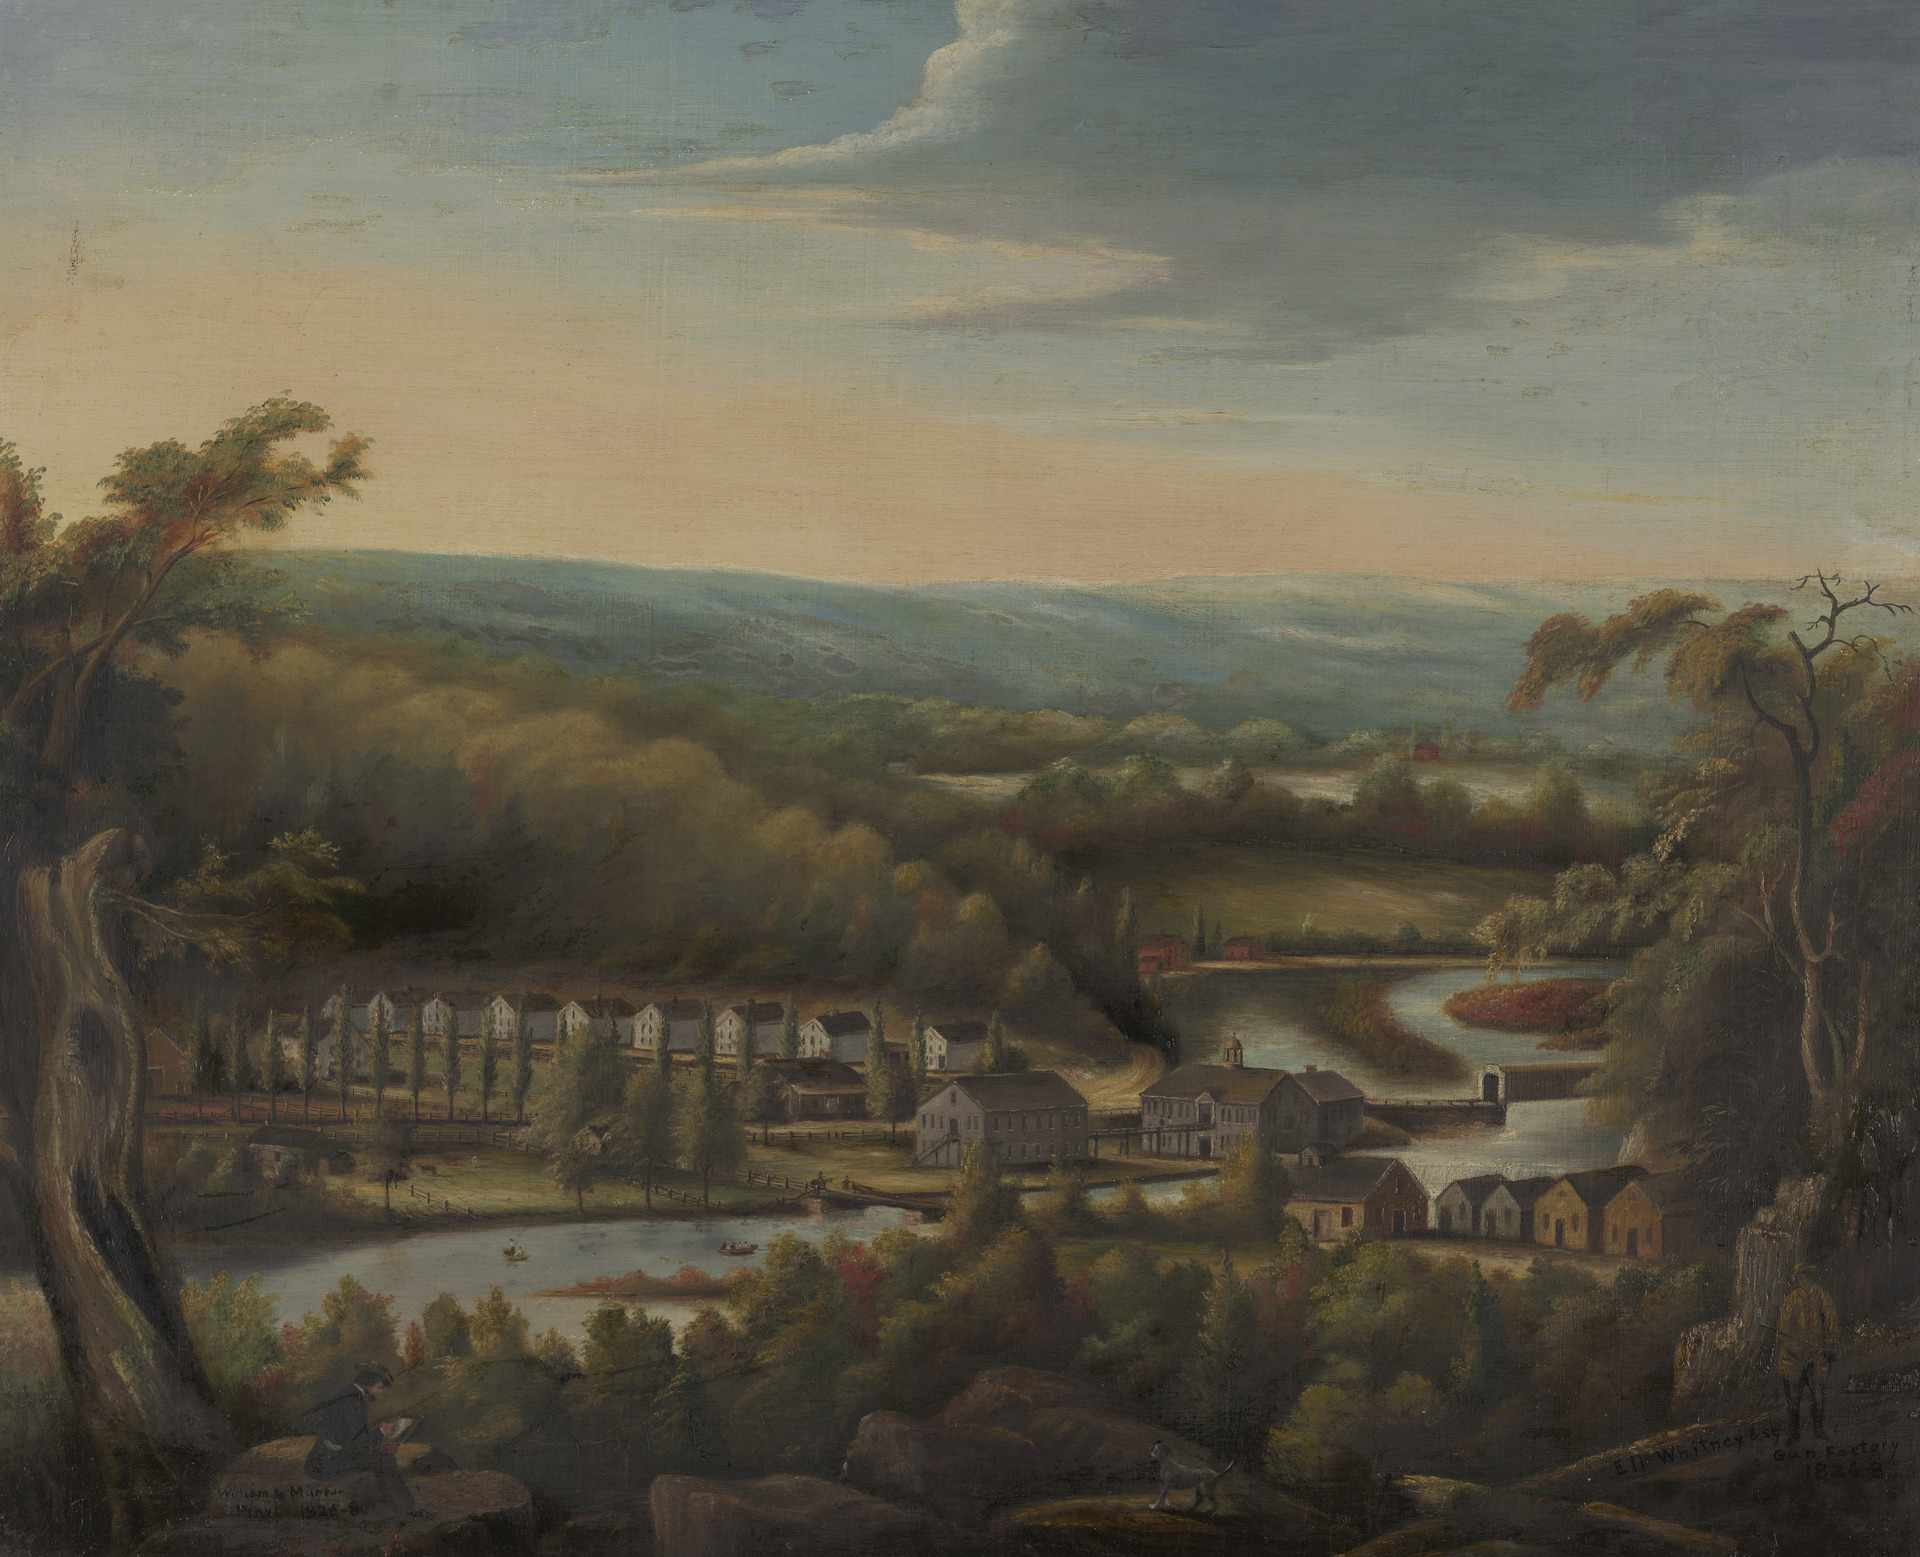 A depiction of the Eli Whitney gun factory in Whitneyville by William Giles Munson. Oil on canvas, 1826-8.